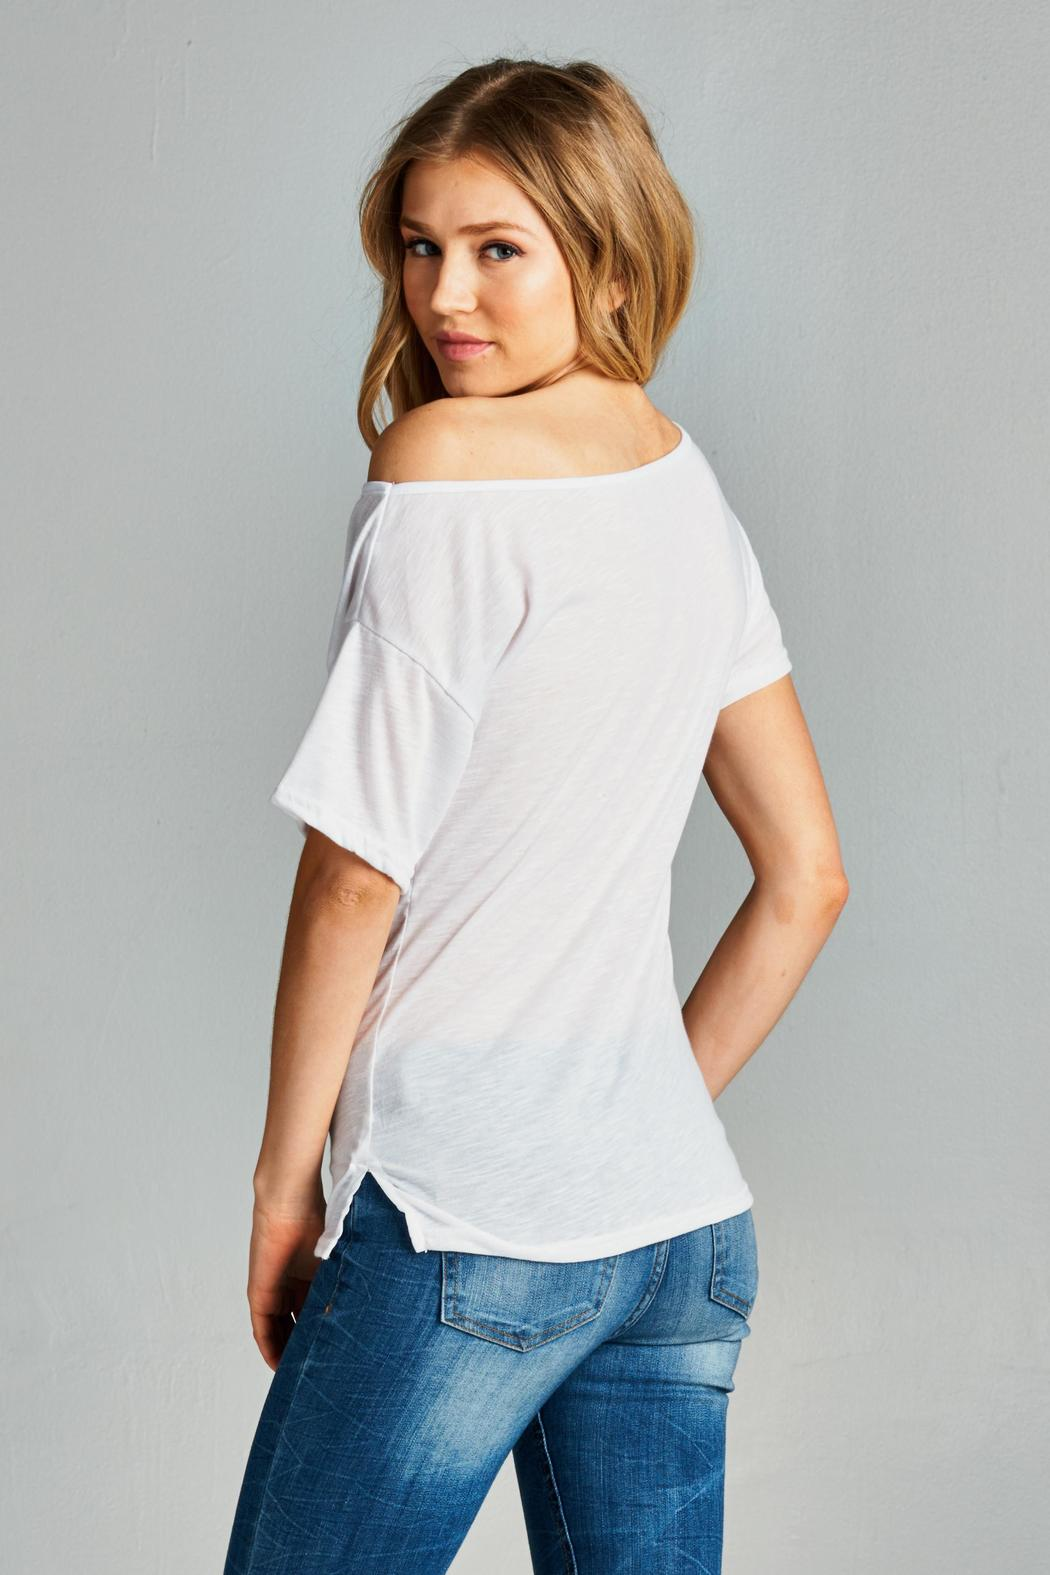 2d1402007af Racine White One Shoulder Tee from California by Racine Love ...